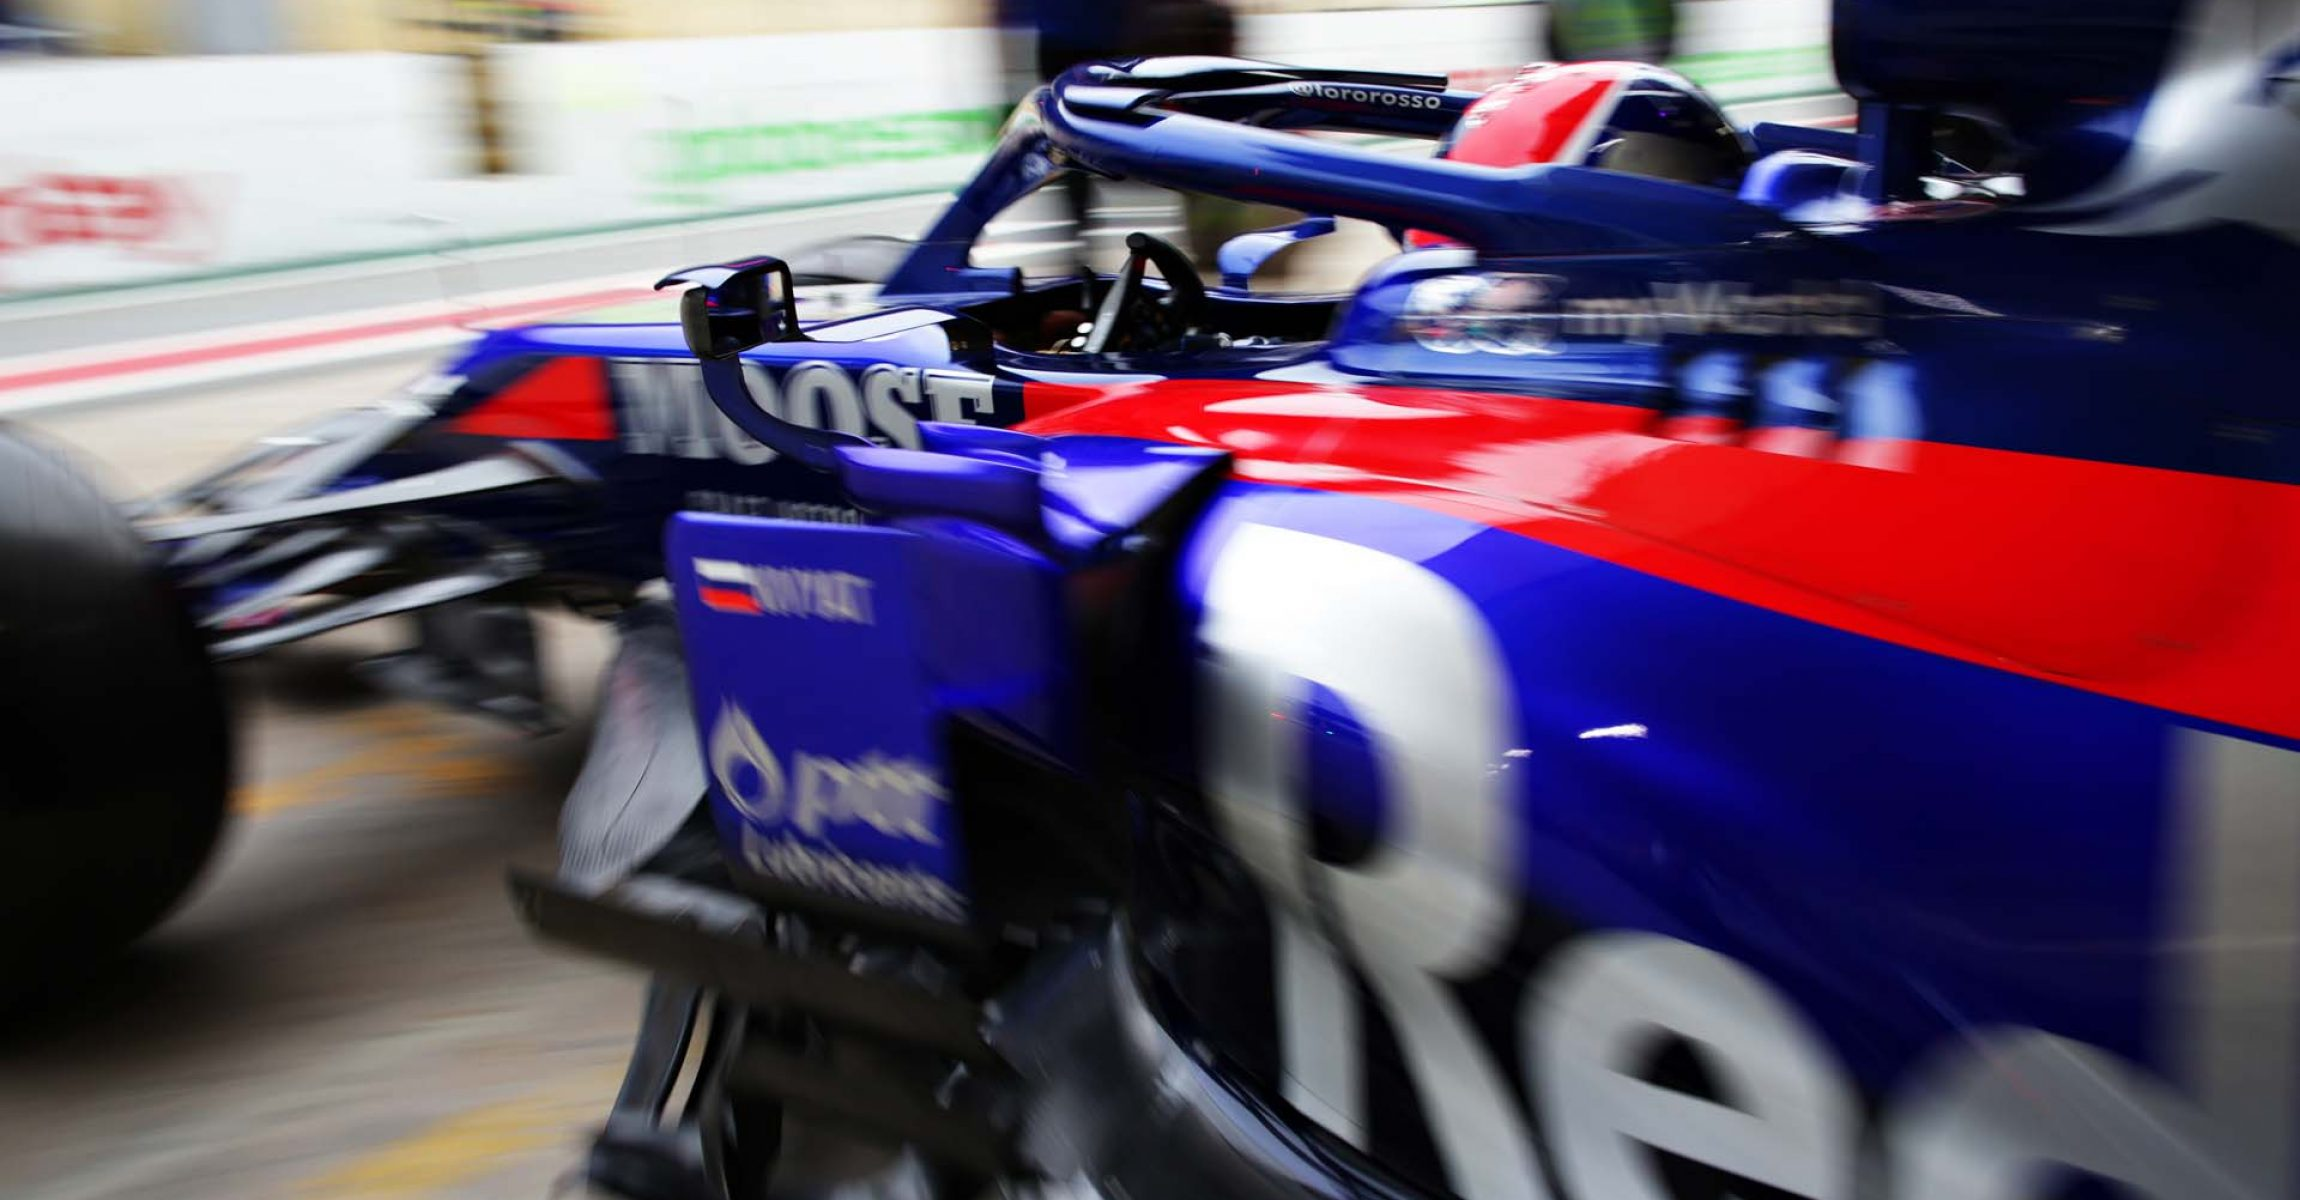 SAO PAULO, BRAZIL - NOVEMBER 15: Daniil Kvyat driving the (26) Scuderia Toro Rosso STR14 Honda leaves the garage during practice for the F1 Grand Prix of Brazil at Autodromo Jose Carlos Pace on November 15, 2019 in Sao Paulo, Brazil. (Photo by Peter Fox/Getty Images) // Getty Images / Red Bull Content Pool // AP-226RTNGE92111 // Usage for editorial use only //